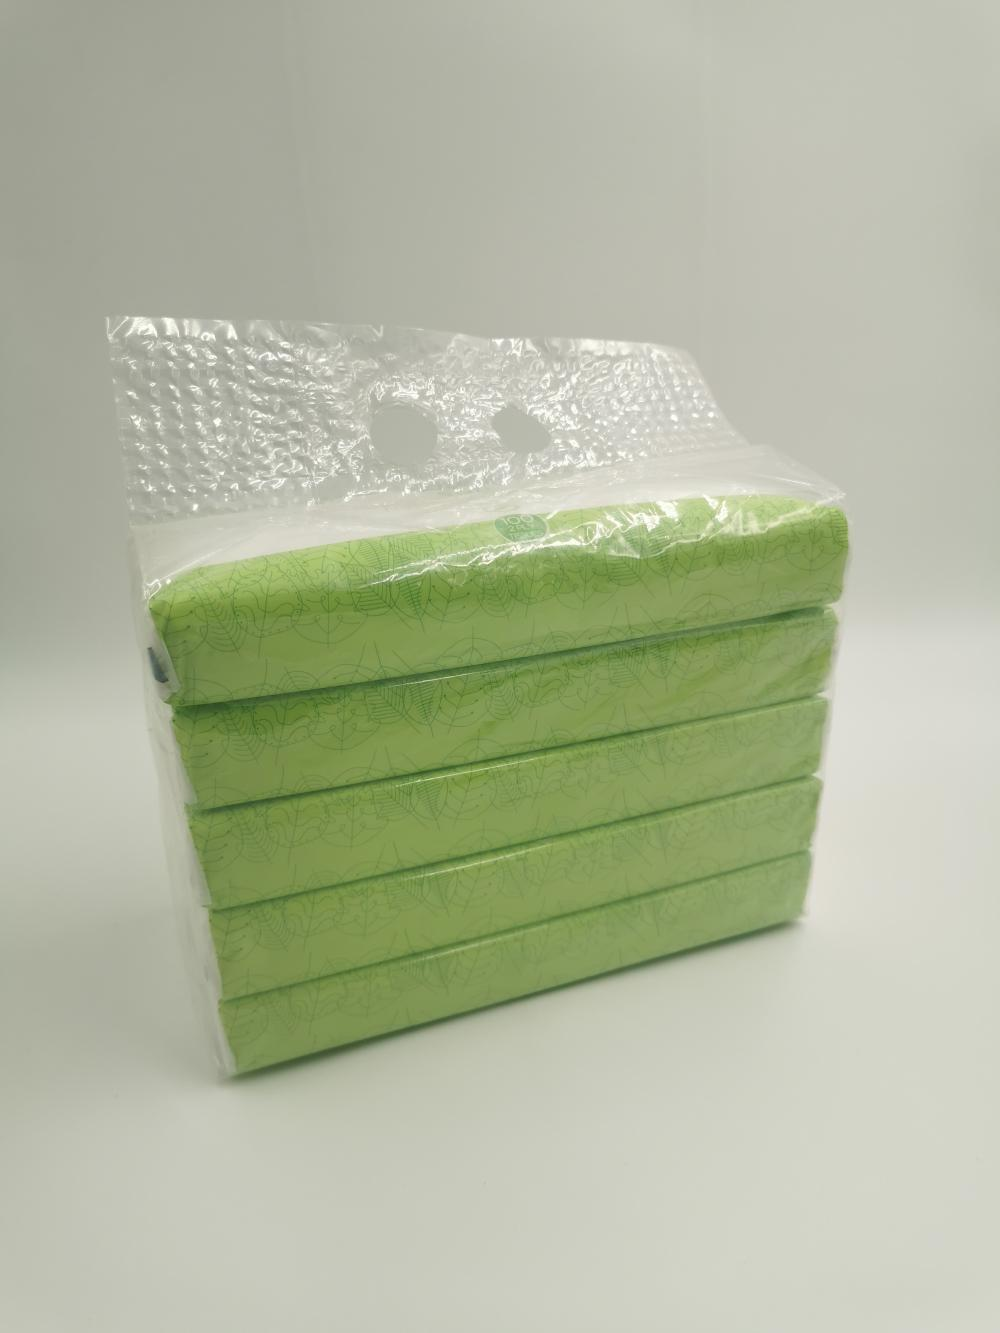 Soft Packe Tissue